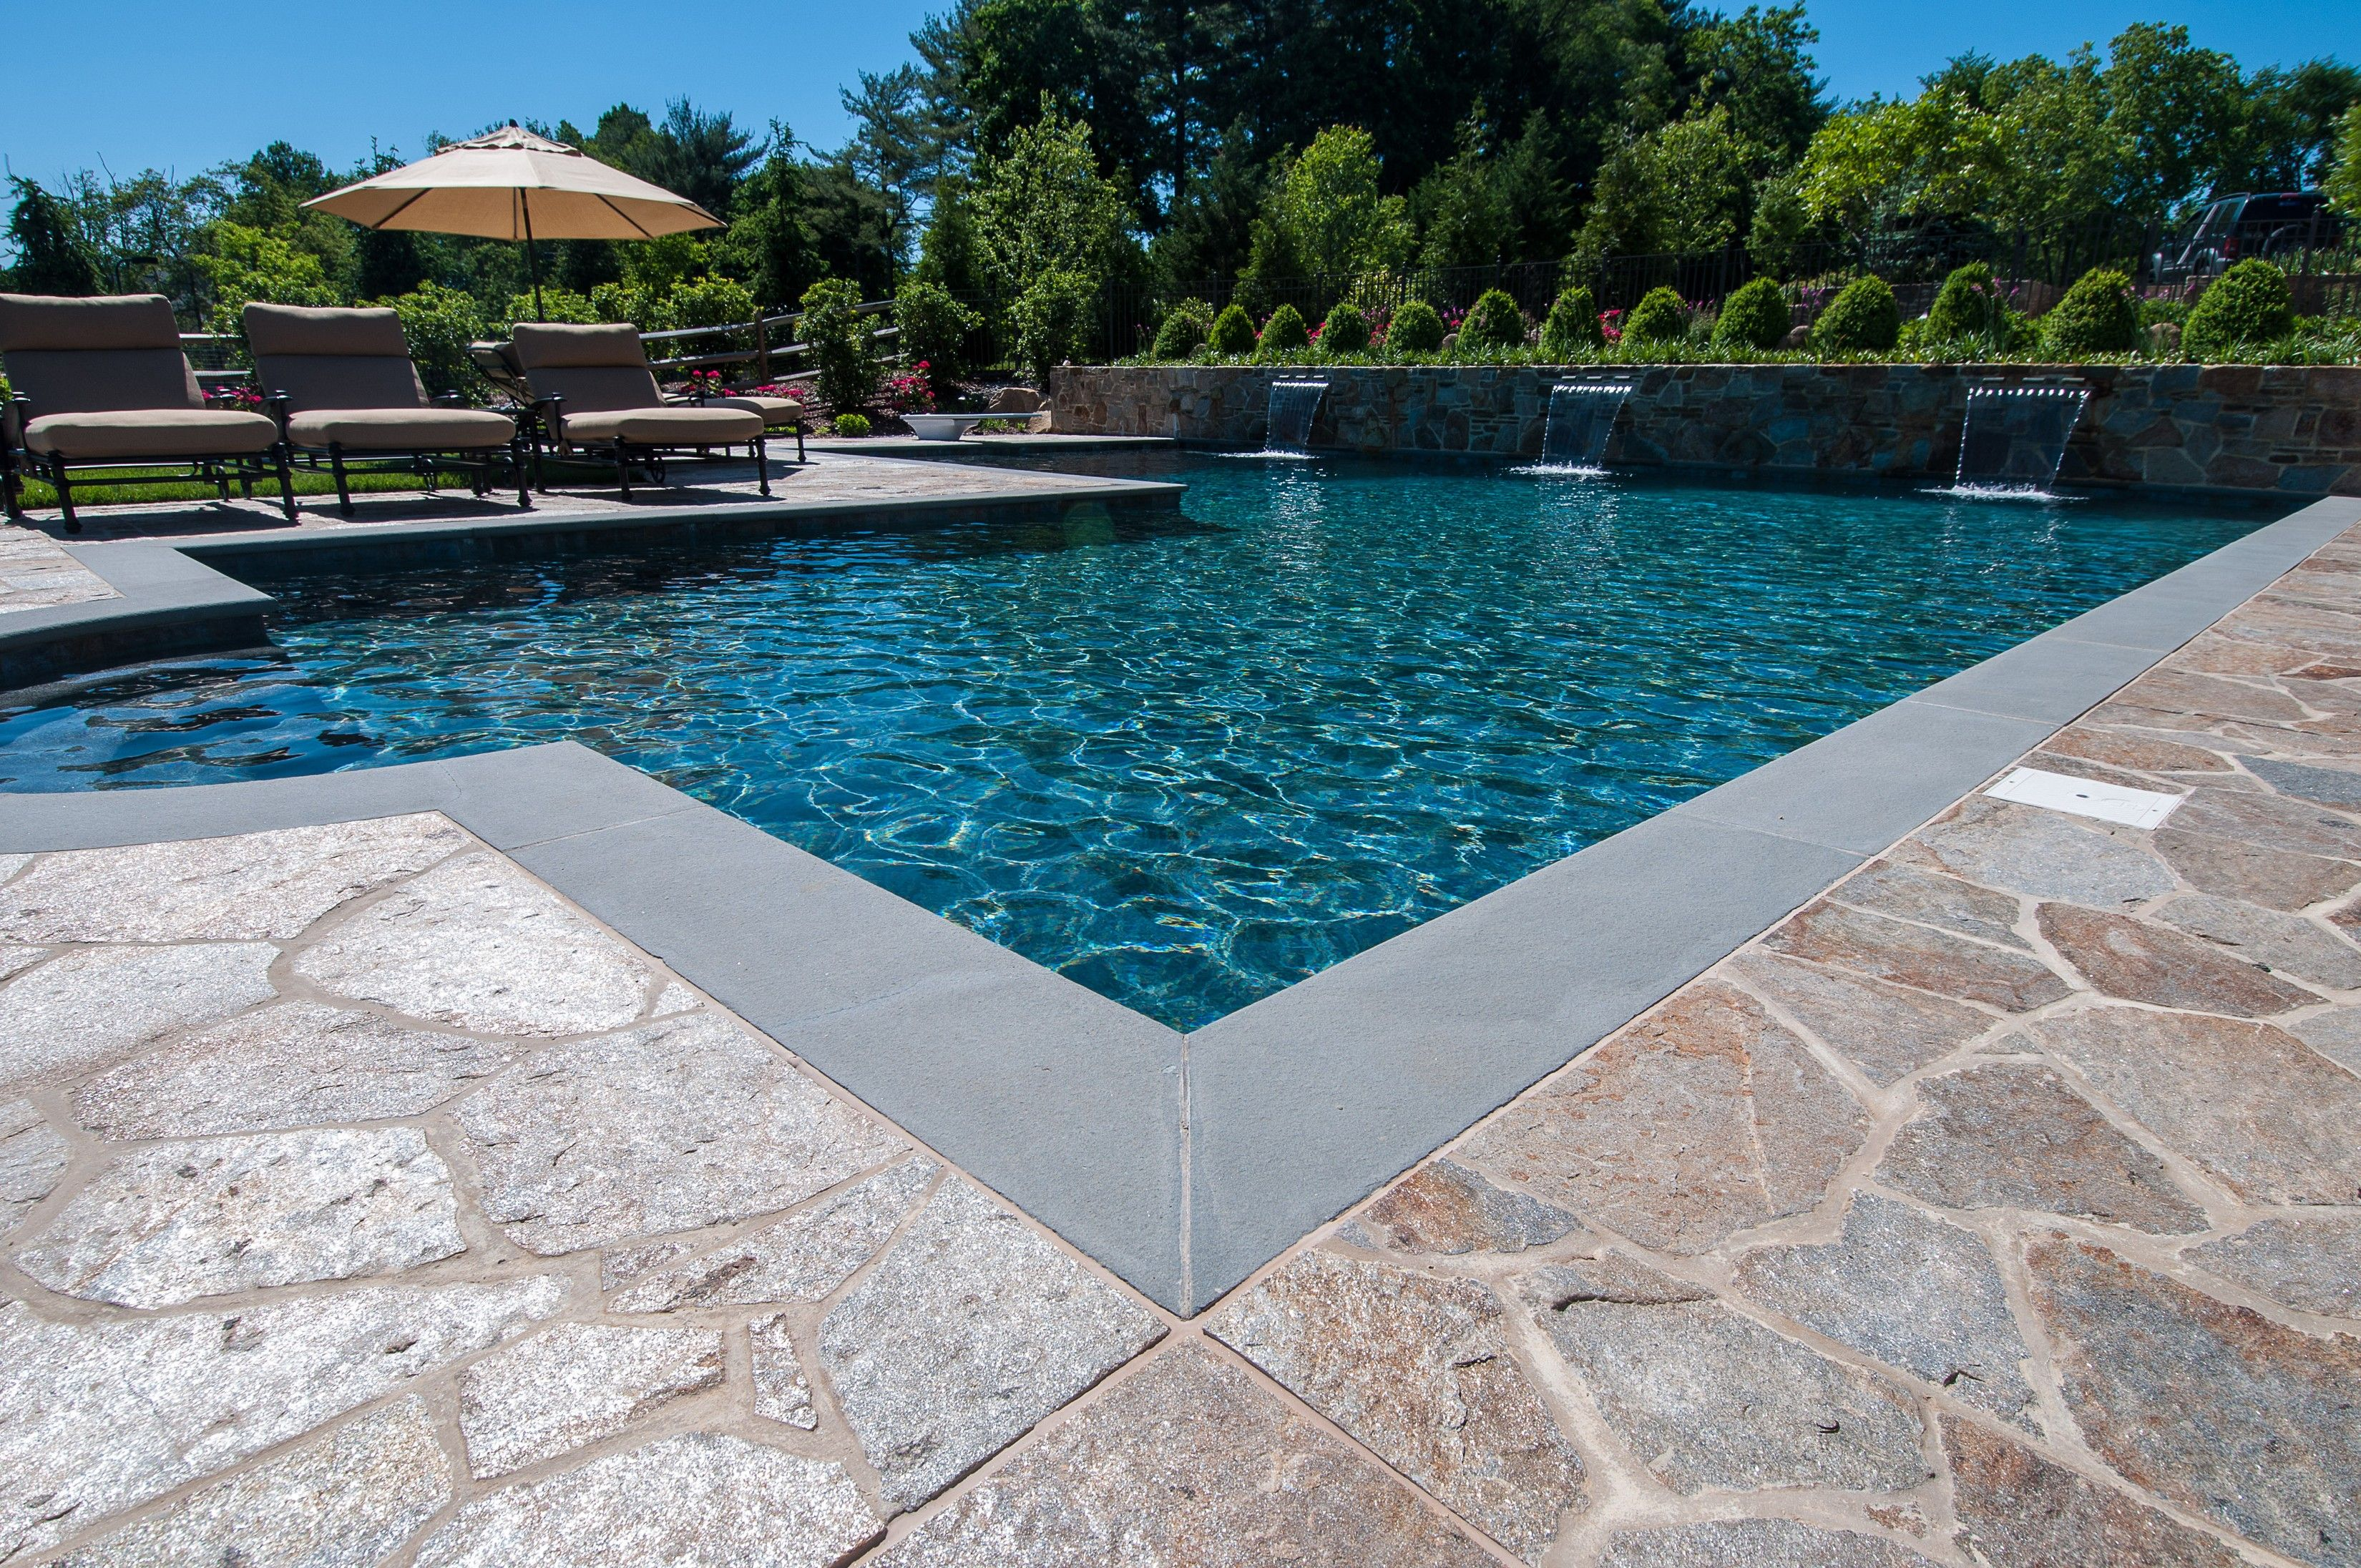 Pebble sheen ocean blue pool finish poolscapes pinterest blue pool backyard and pool remodel for Pebble finishes for swimming pools